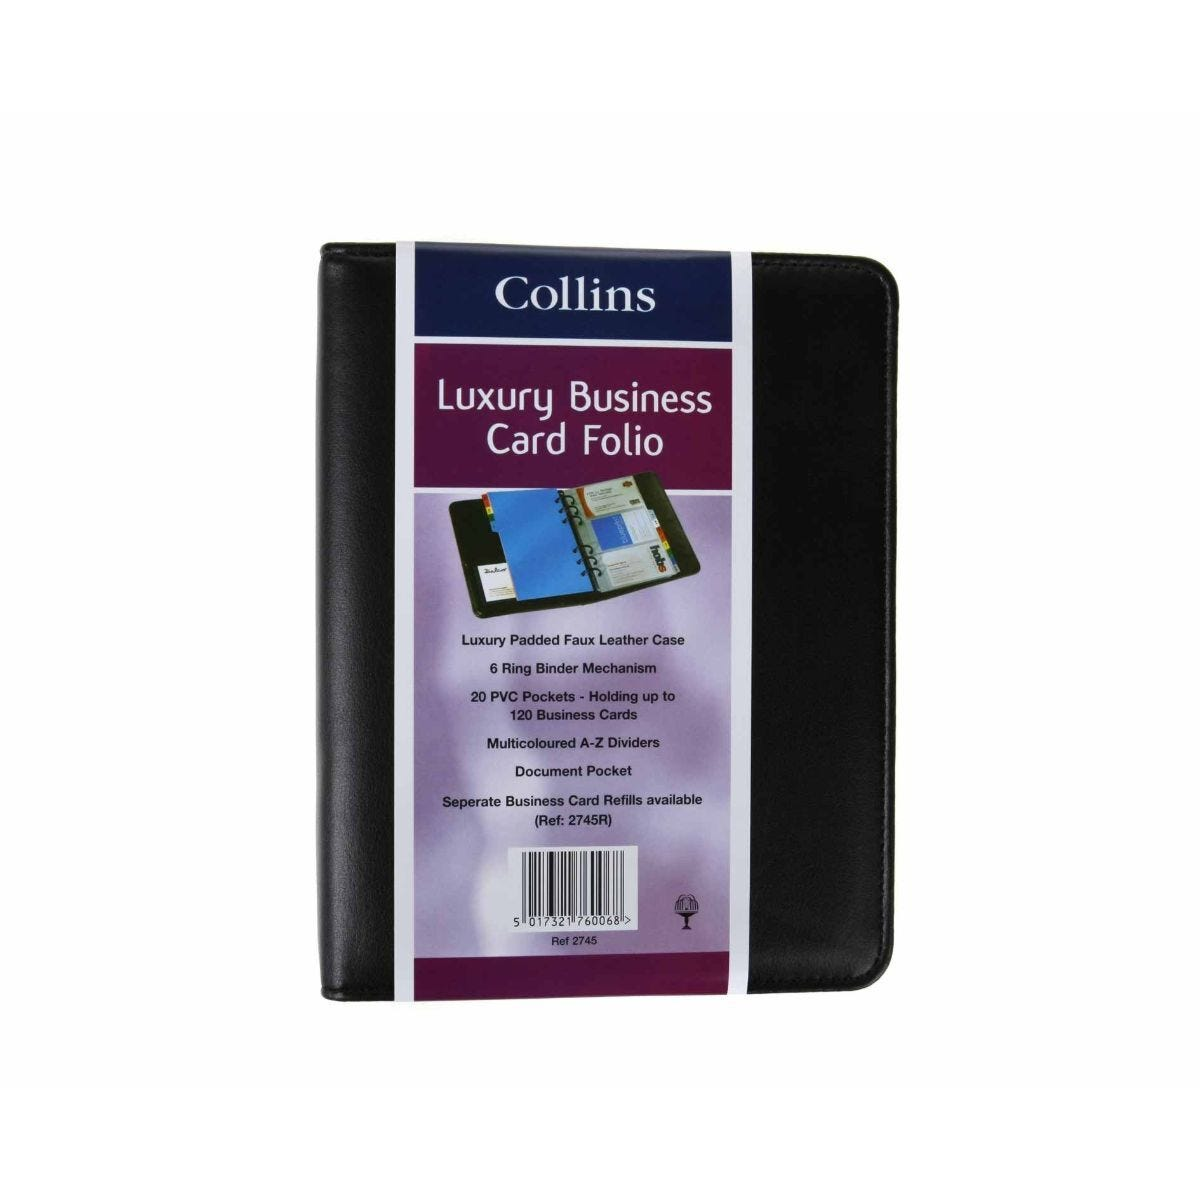 Collins Deluxe Business Card Holder